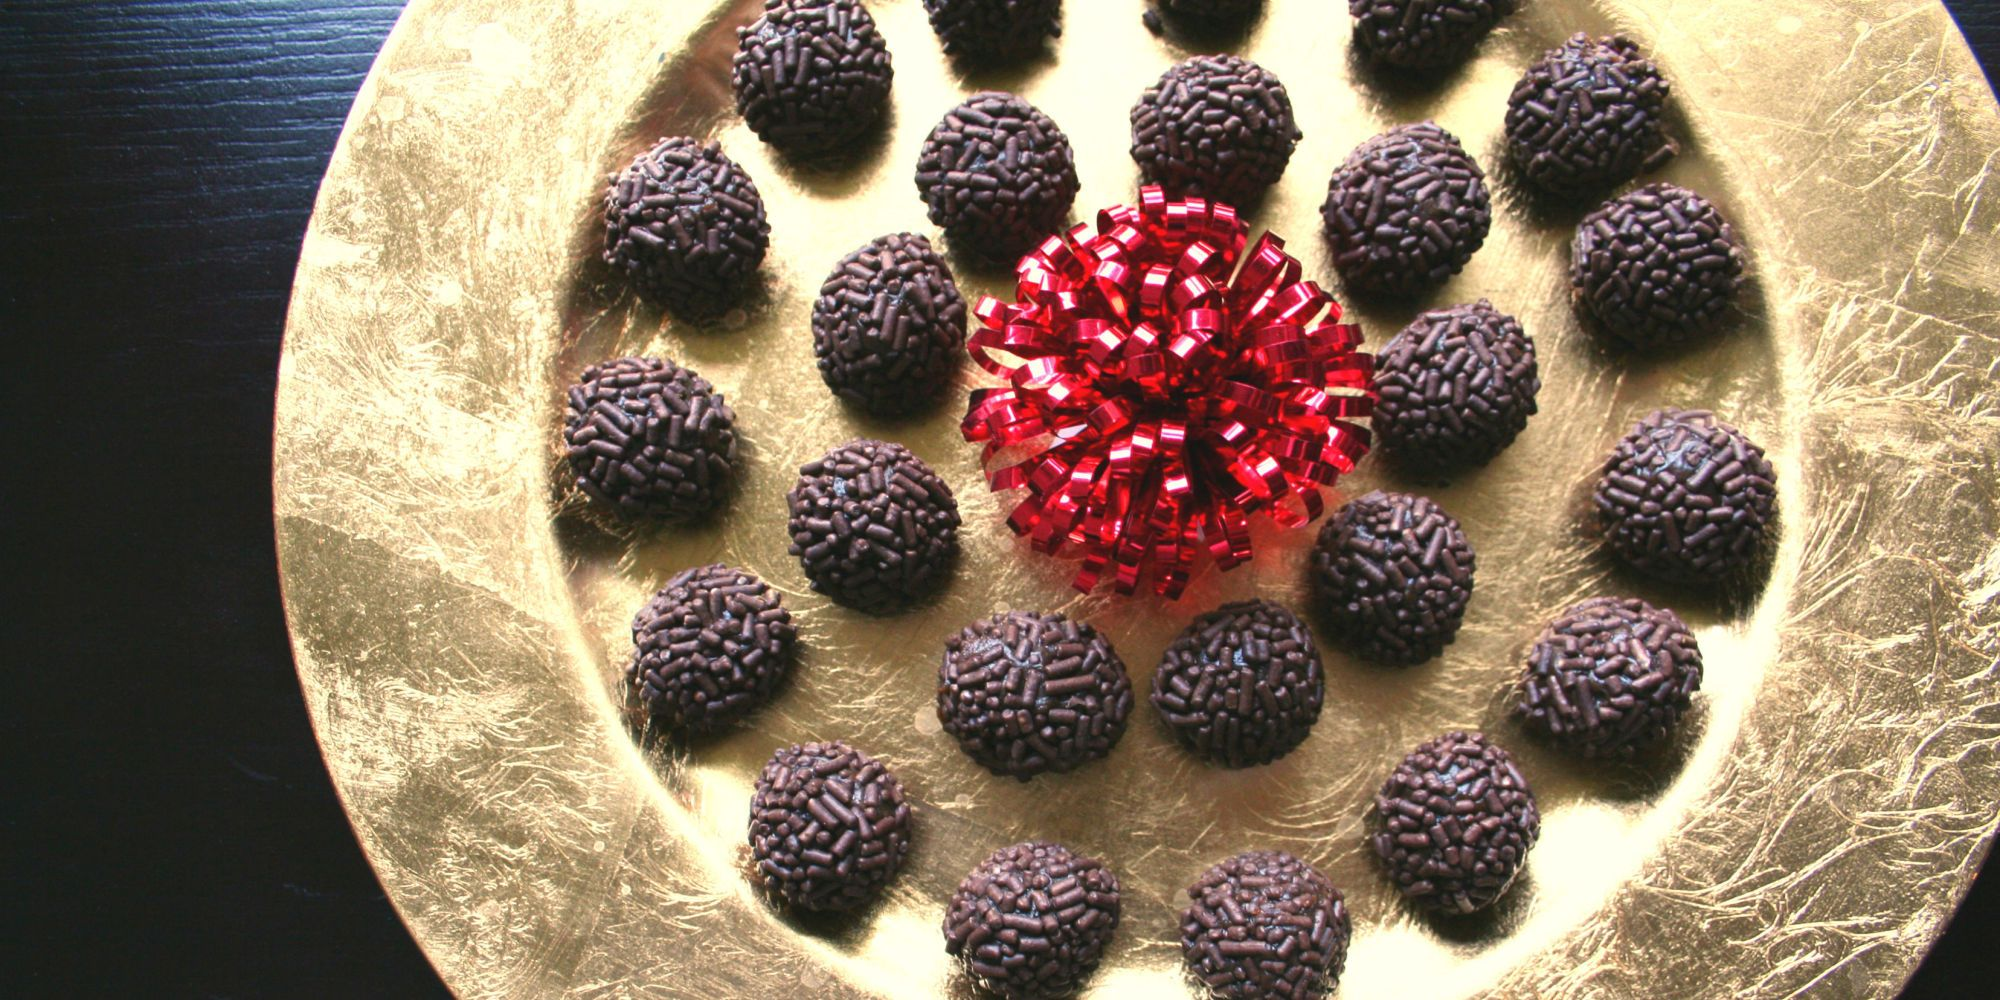 Brigadeiros...delicious Brazilian truffles! Perfect for a little after-dinner treat. #recipe #dessert #NapaValleyHoliday